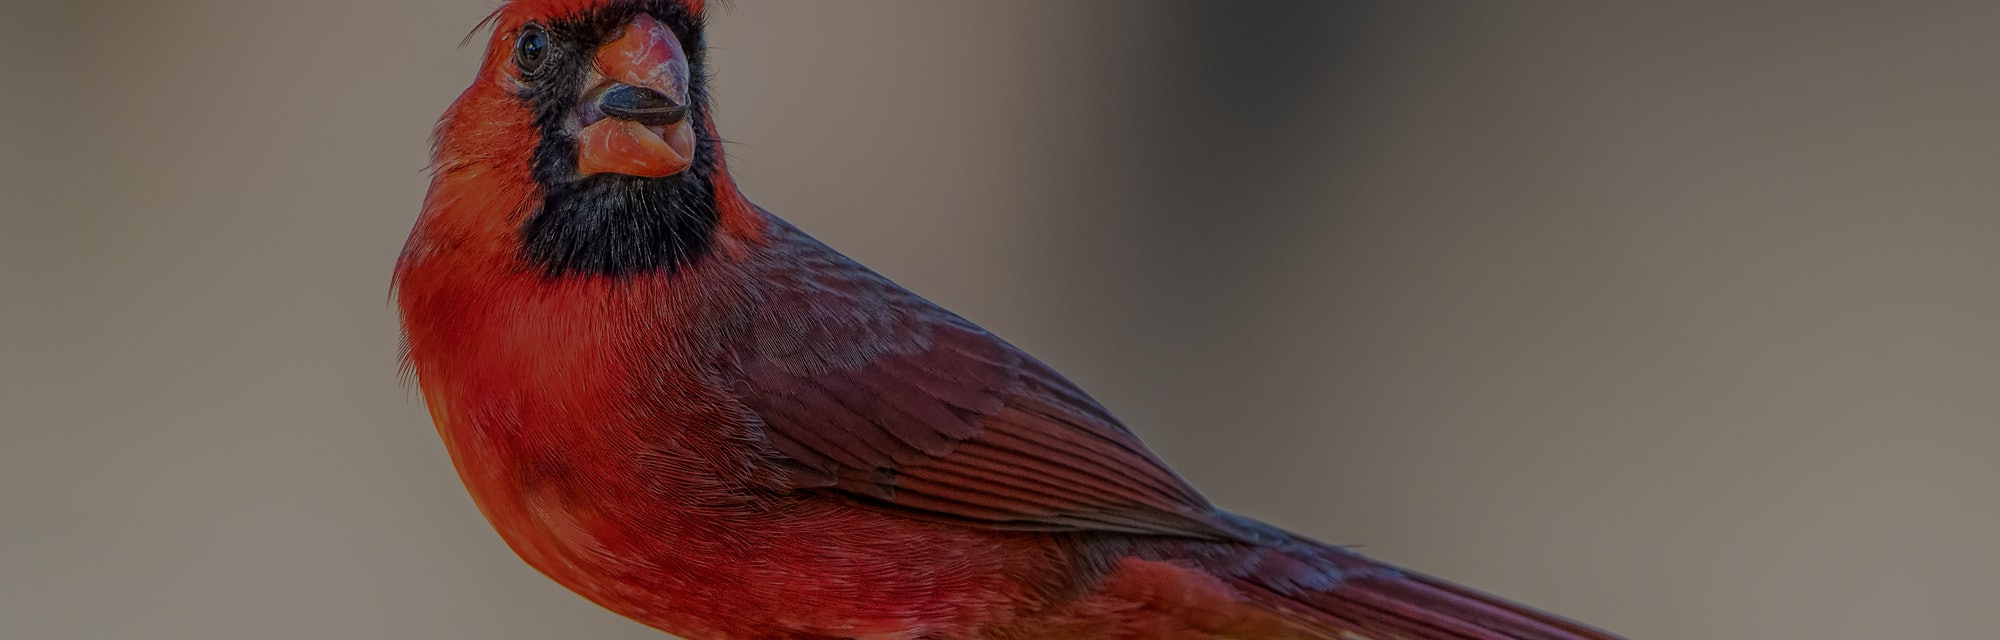 Northern Cardinal on Feeder During a Blustery Winter Day in Louisiana